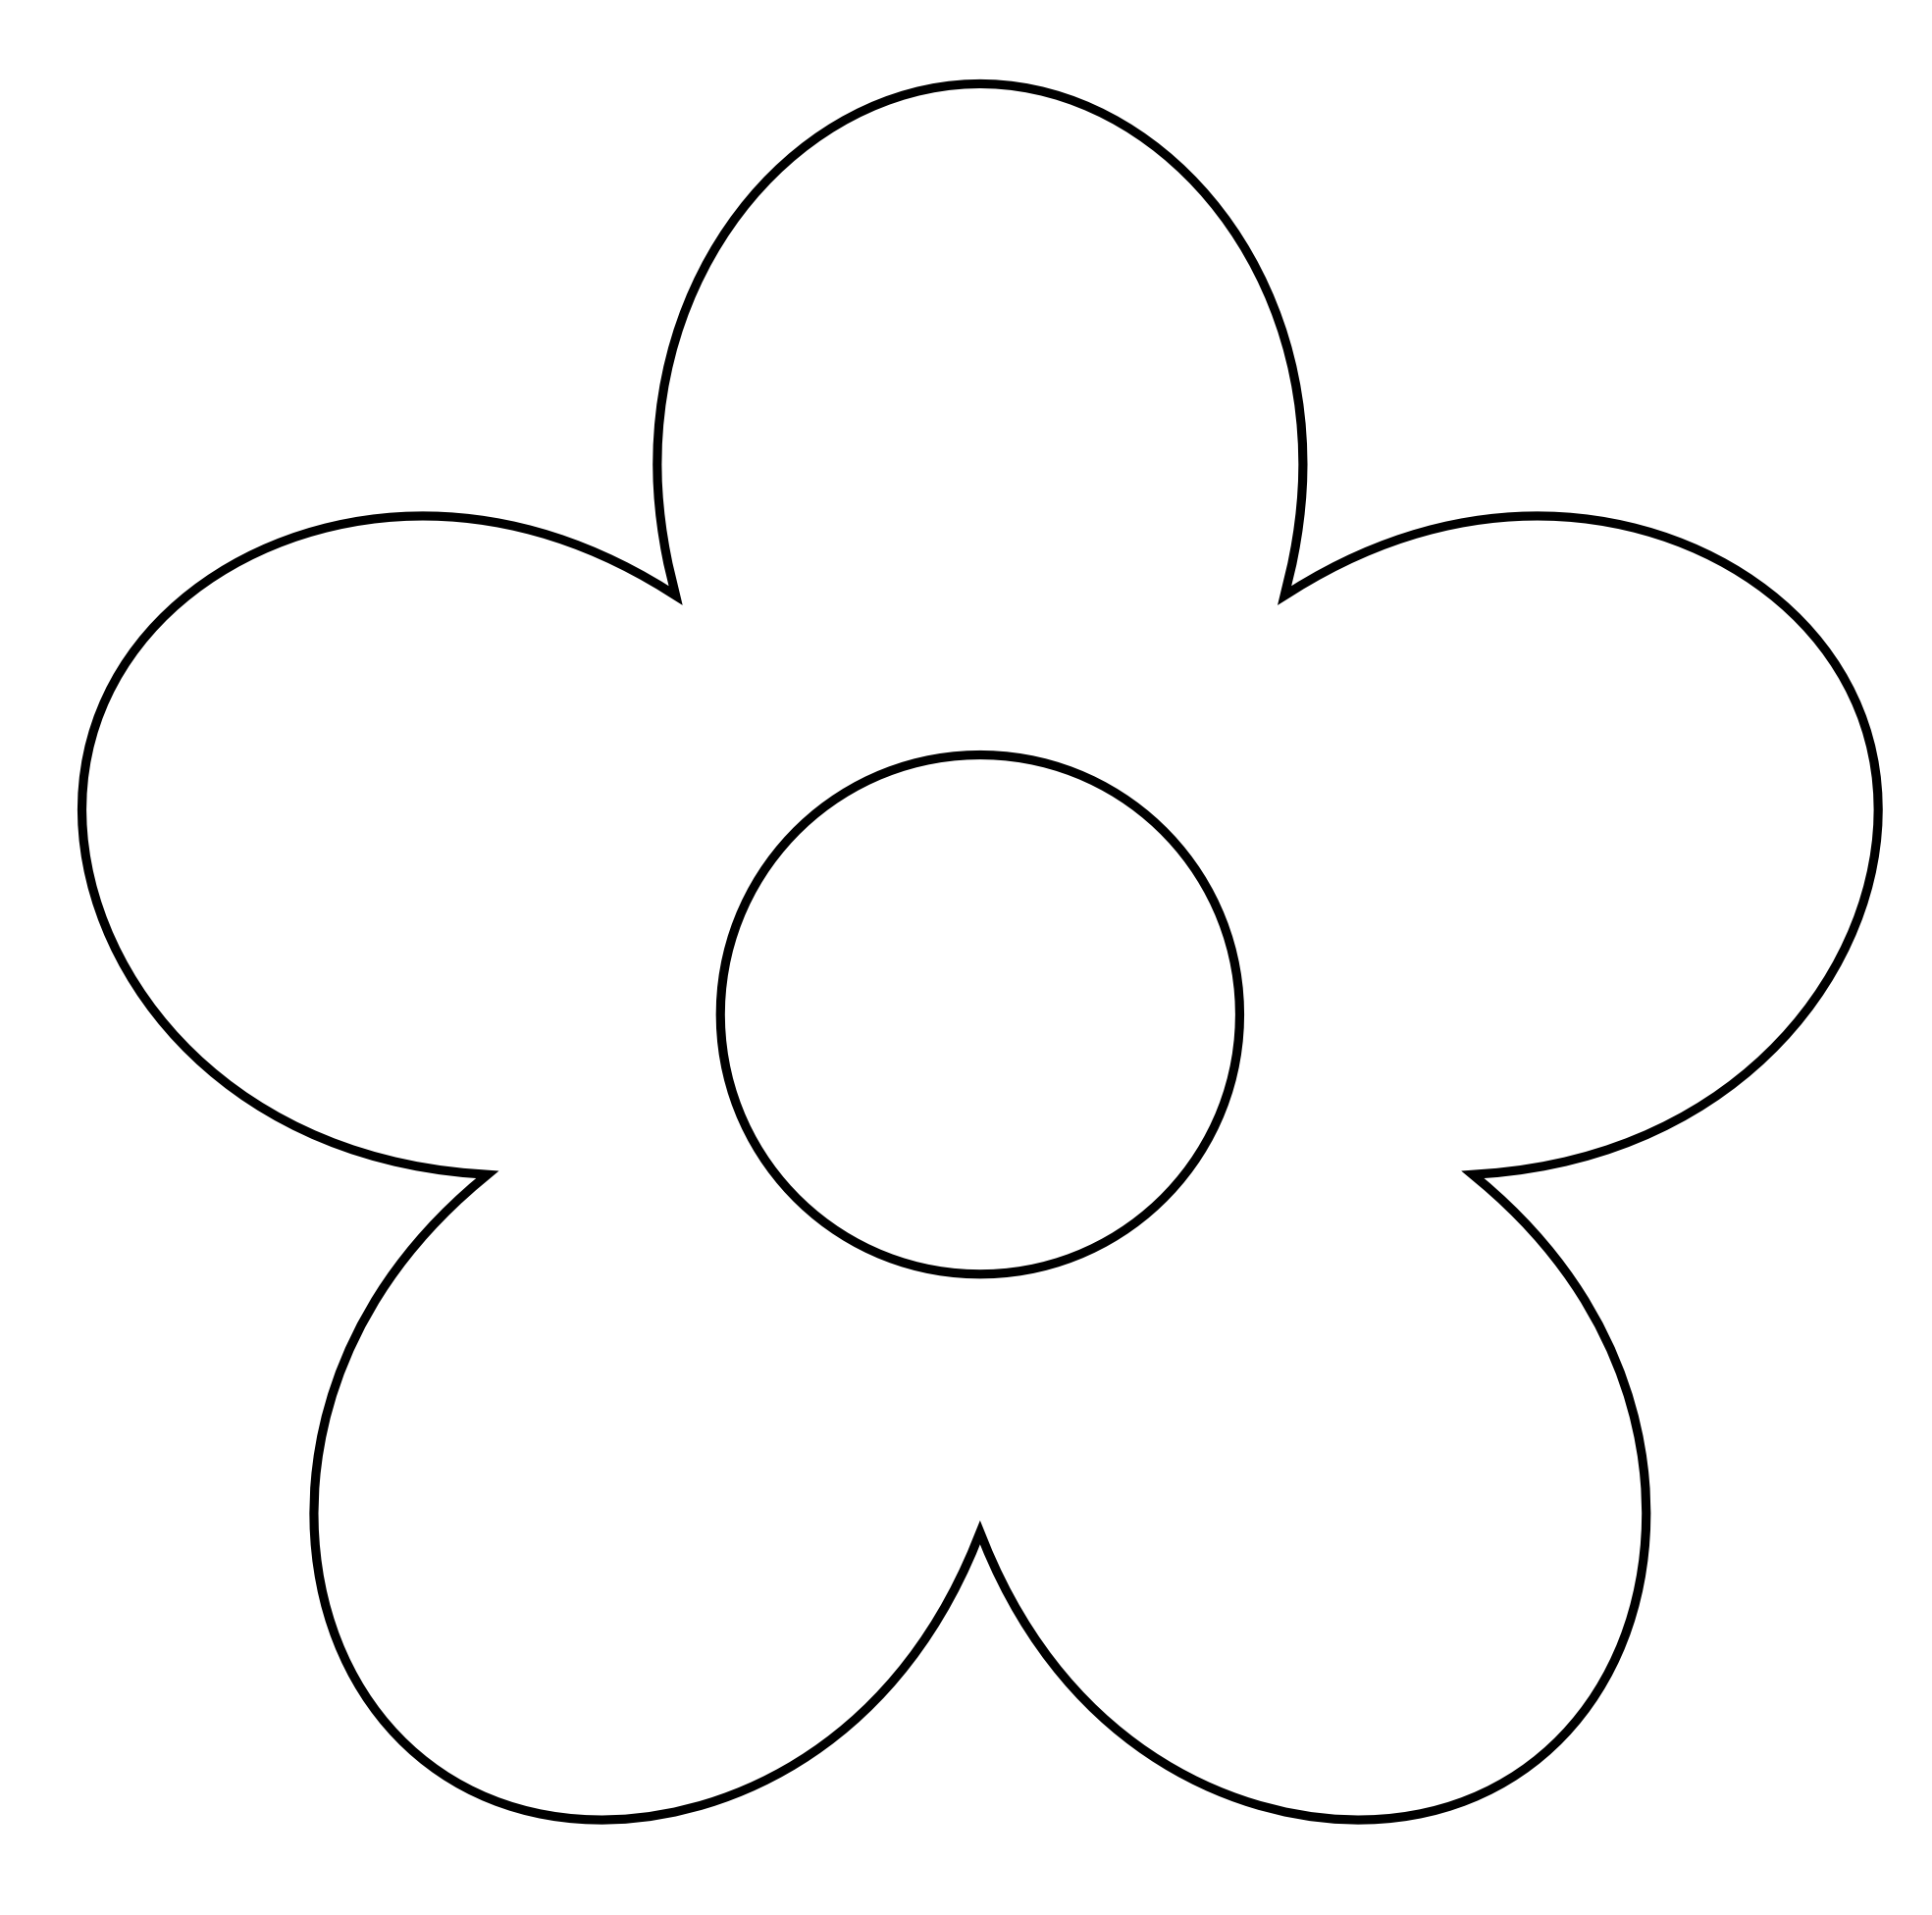 Simple black and white flower clipart banner freeuse download White flower clipart png - ClipartFest banner freeuse download